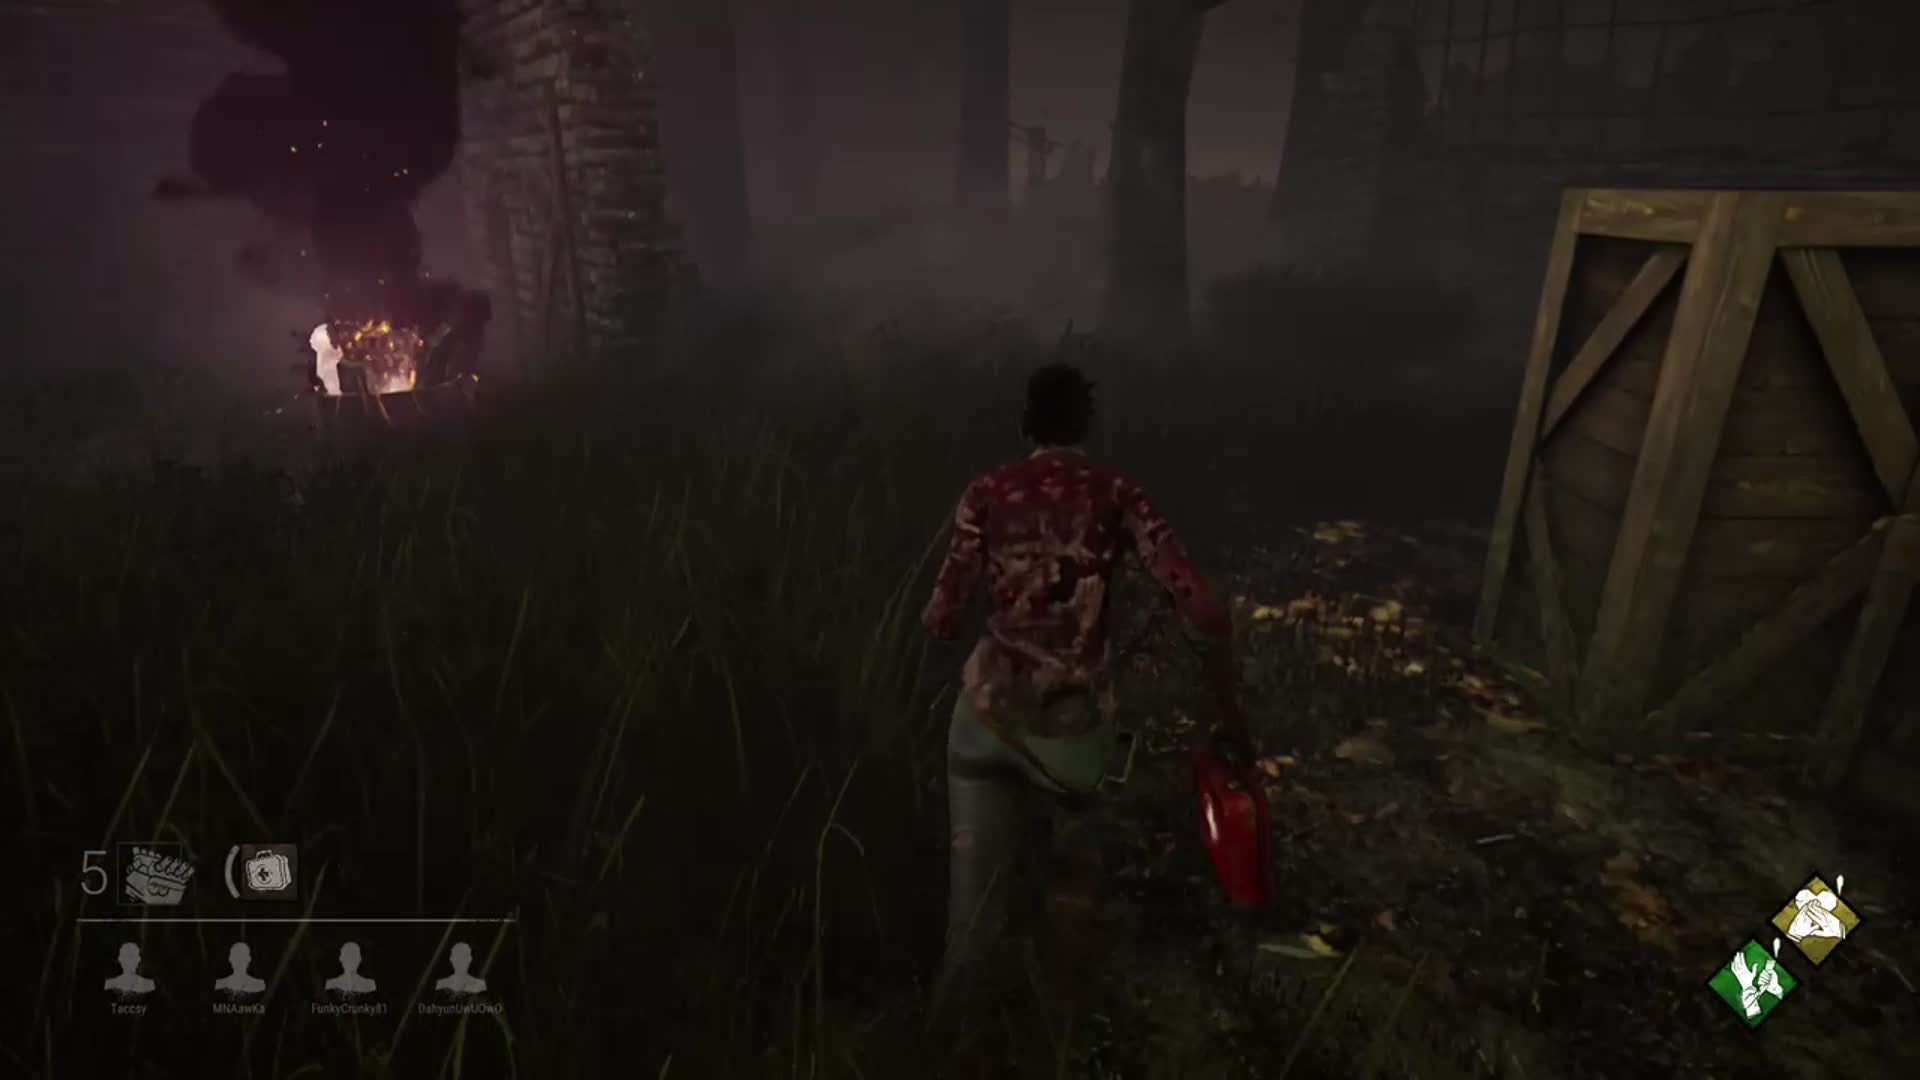 Dead by Daylight: General - I was waiting to see who the killer was and...yeah... video cover image 0